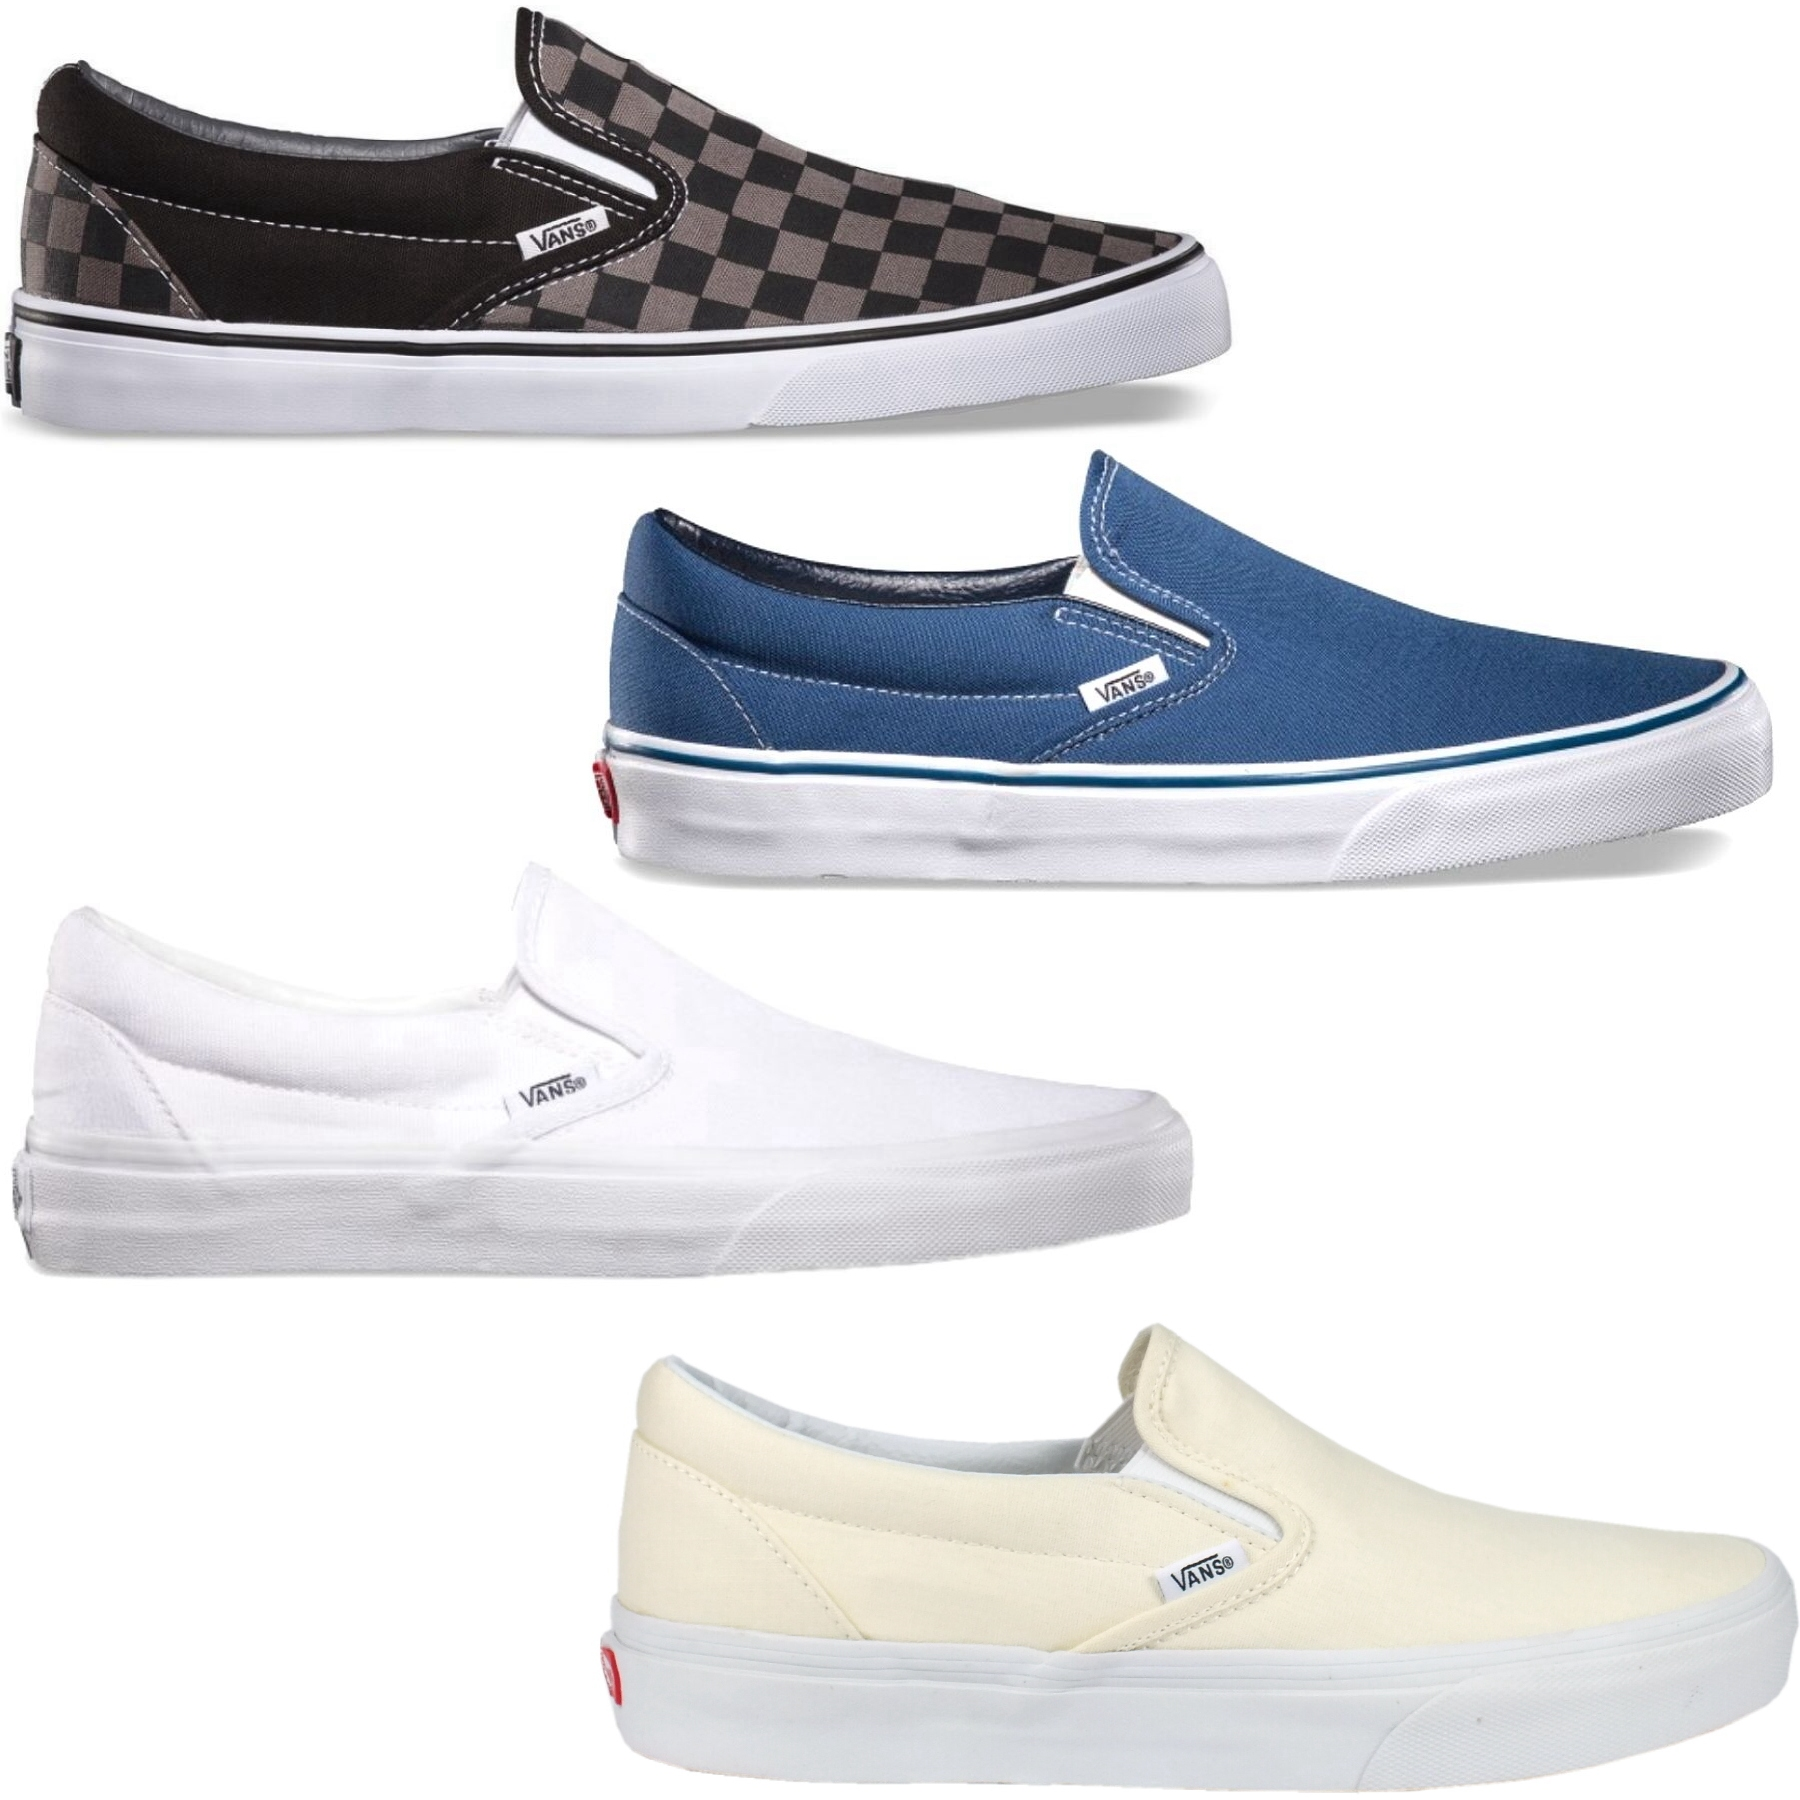 vans classic slip ons damen herren schuhe sneakers freizeitschuhe kariert ebay. Black Bedroom Furniture Sets. Home Design Ideas